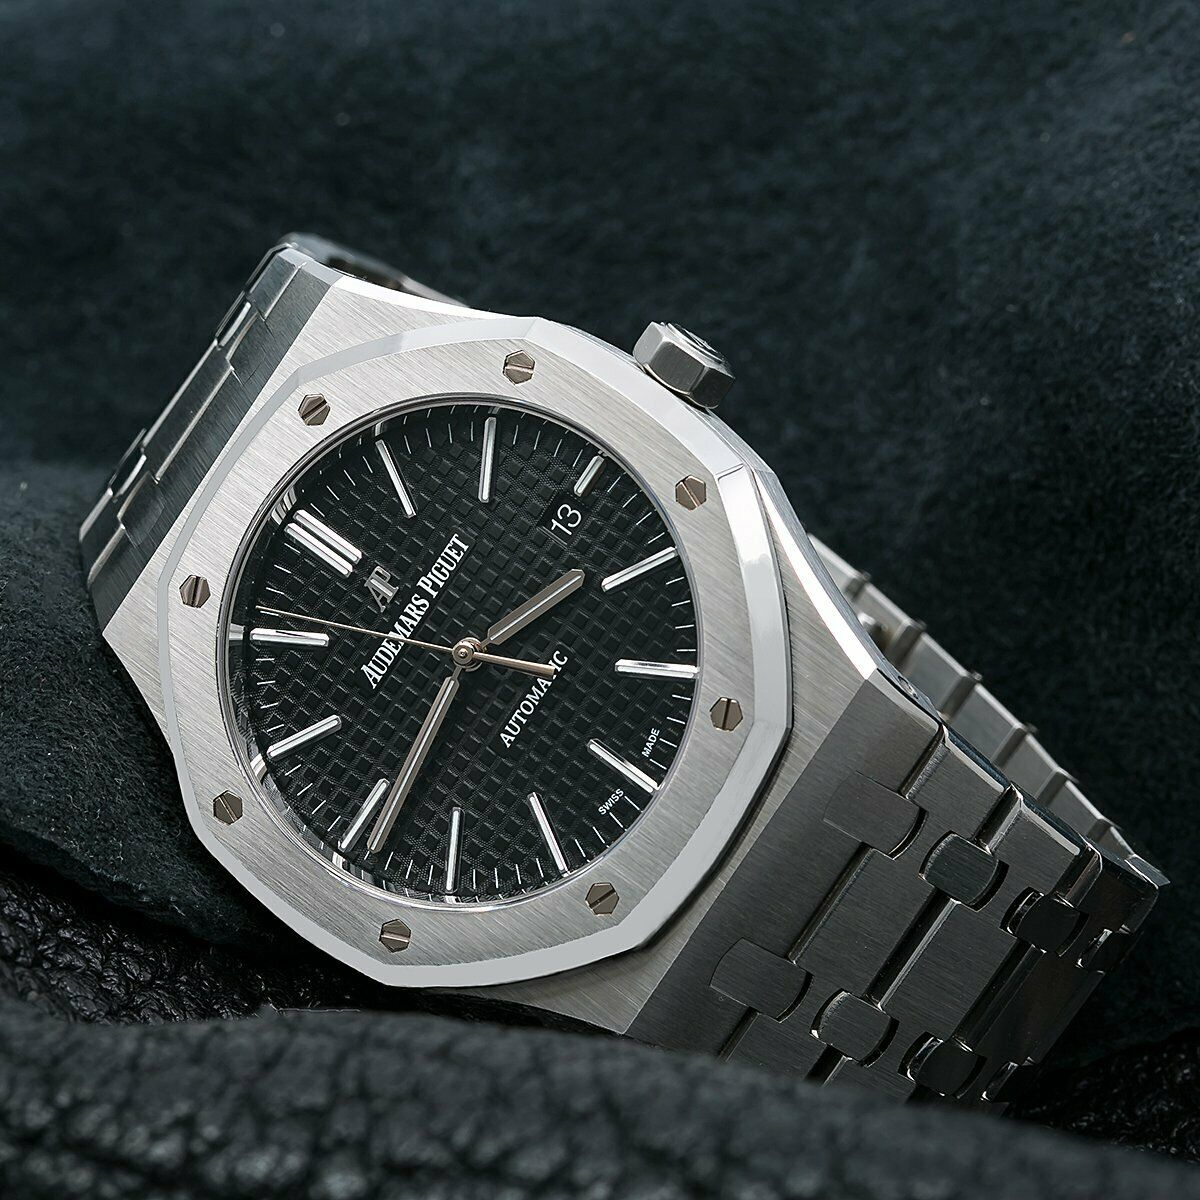 Audemars Piguet Royal Oak Selfwinding 15400st 41mm Black Dial